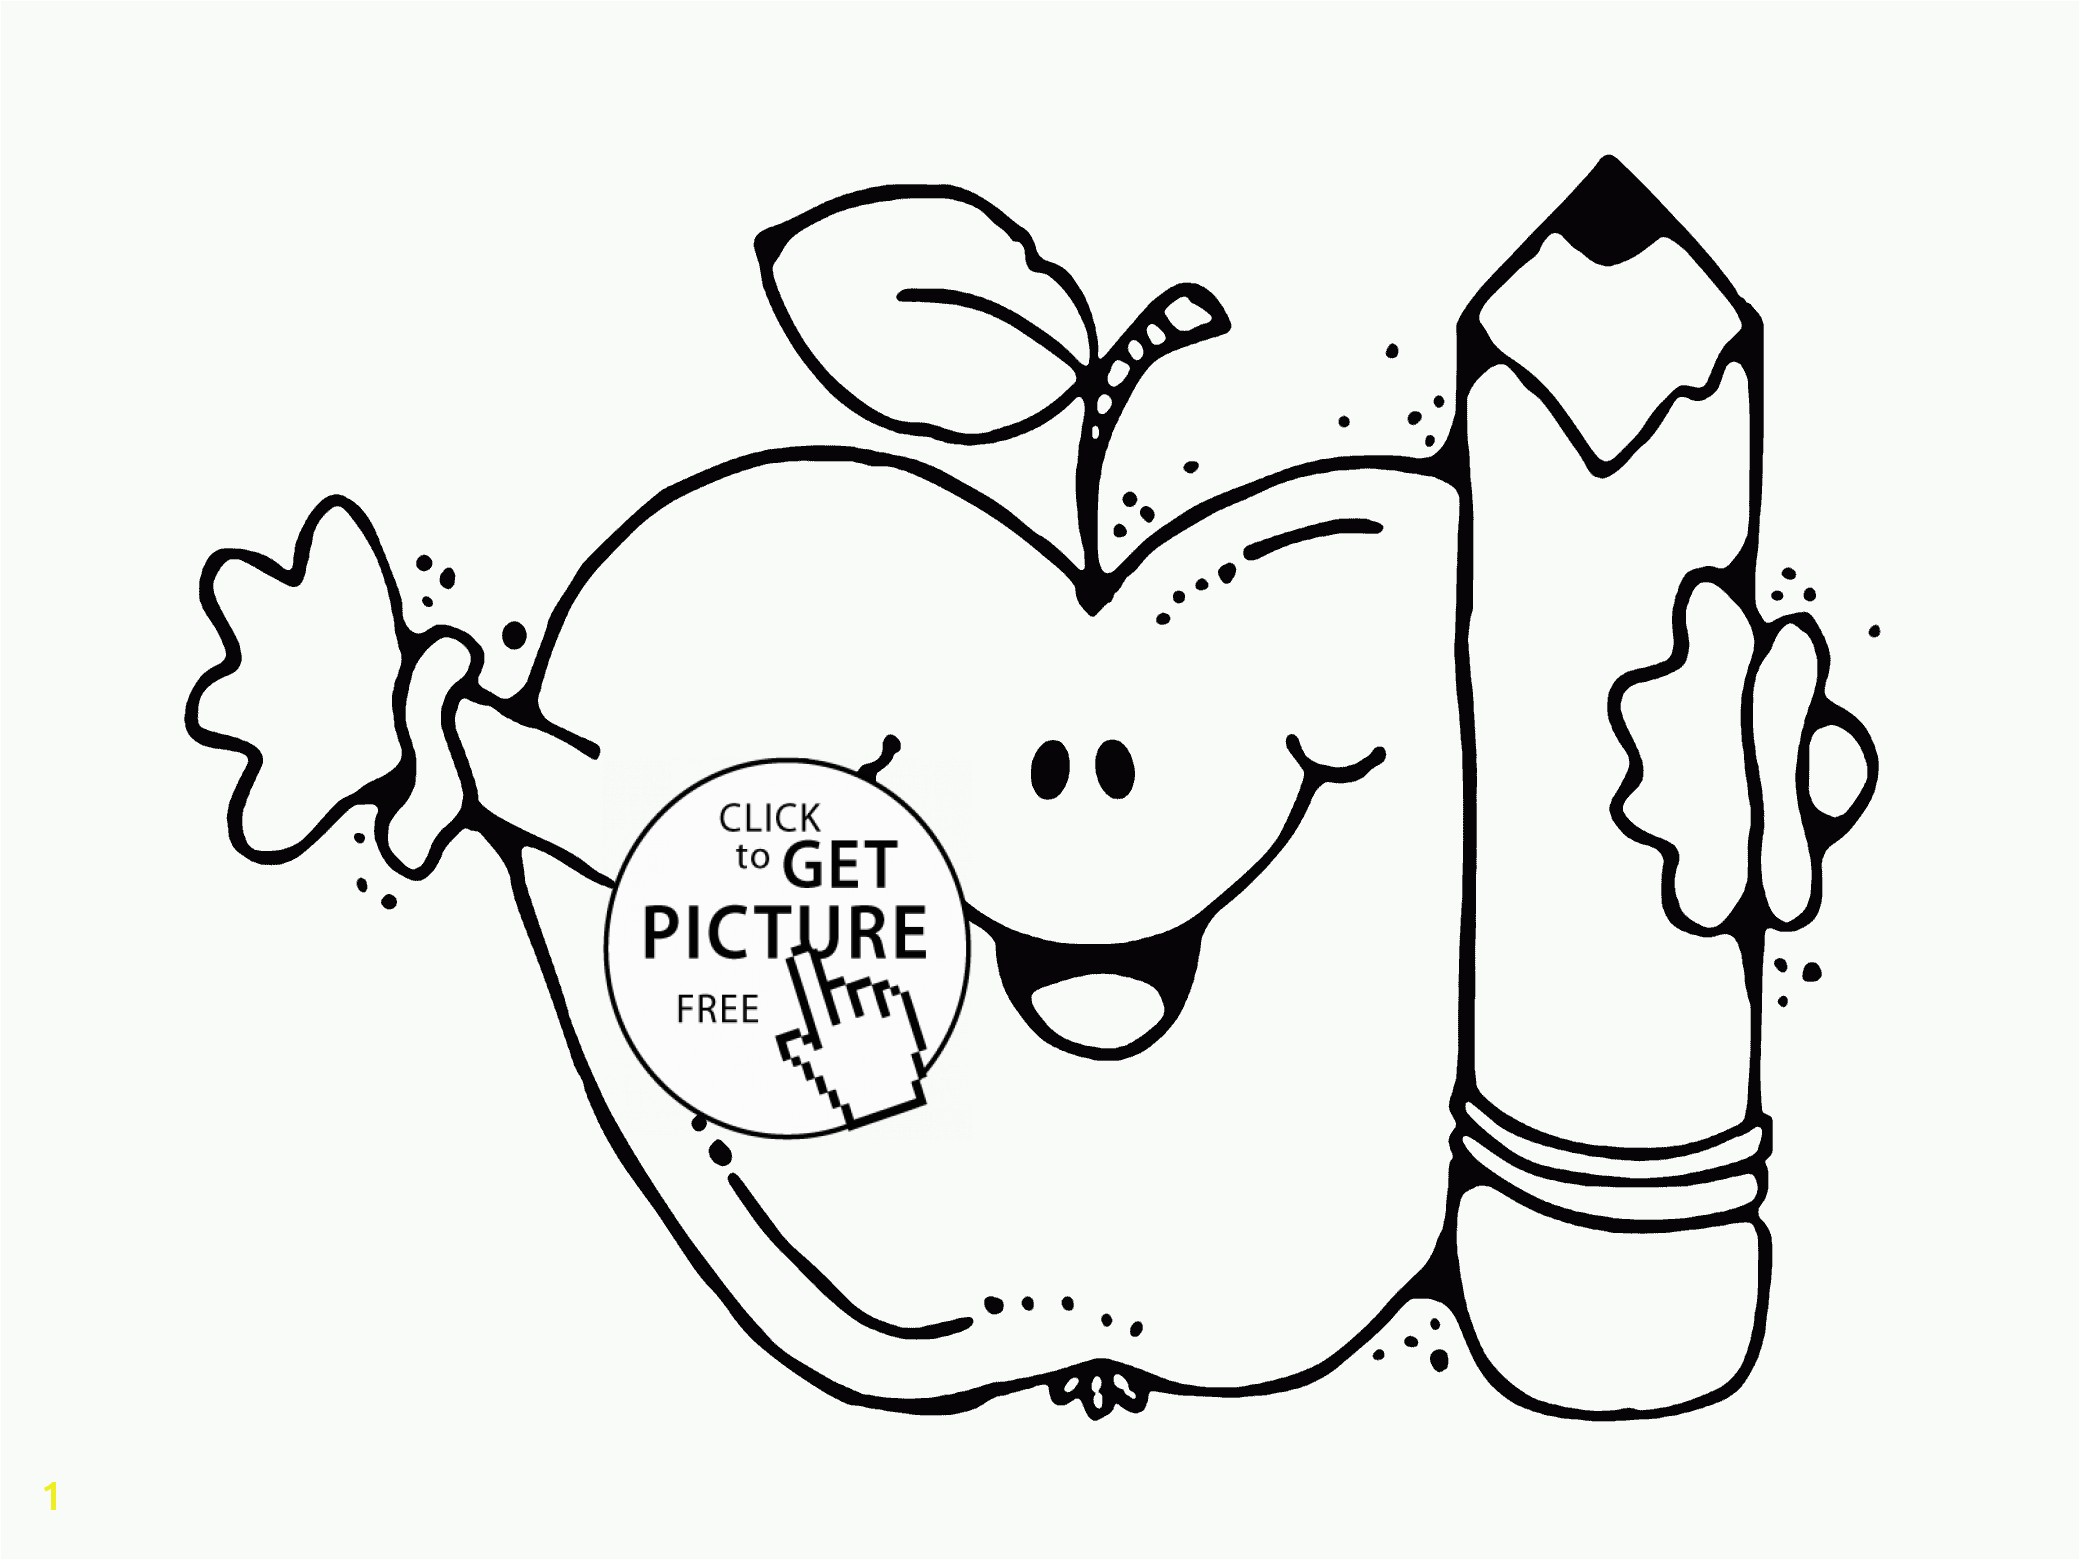 Energy Nail Salon Coloring Pages Revealing Funny Apple With Pencil Page For